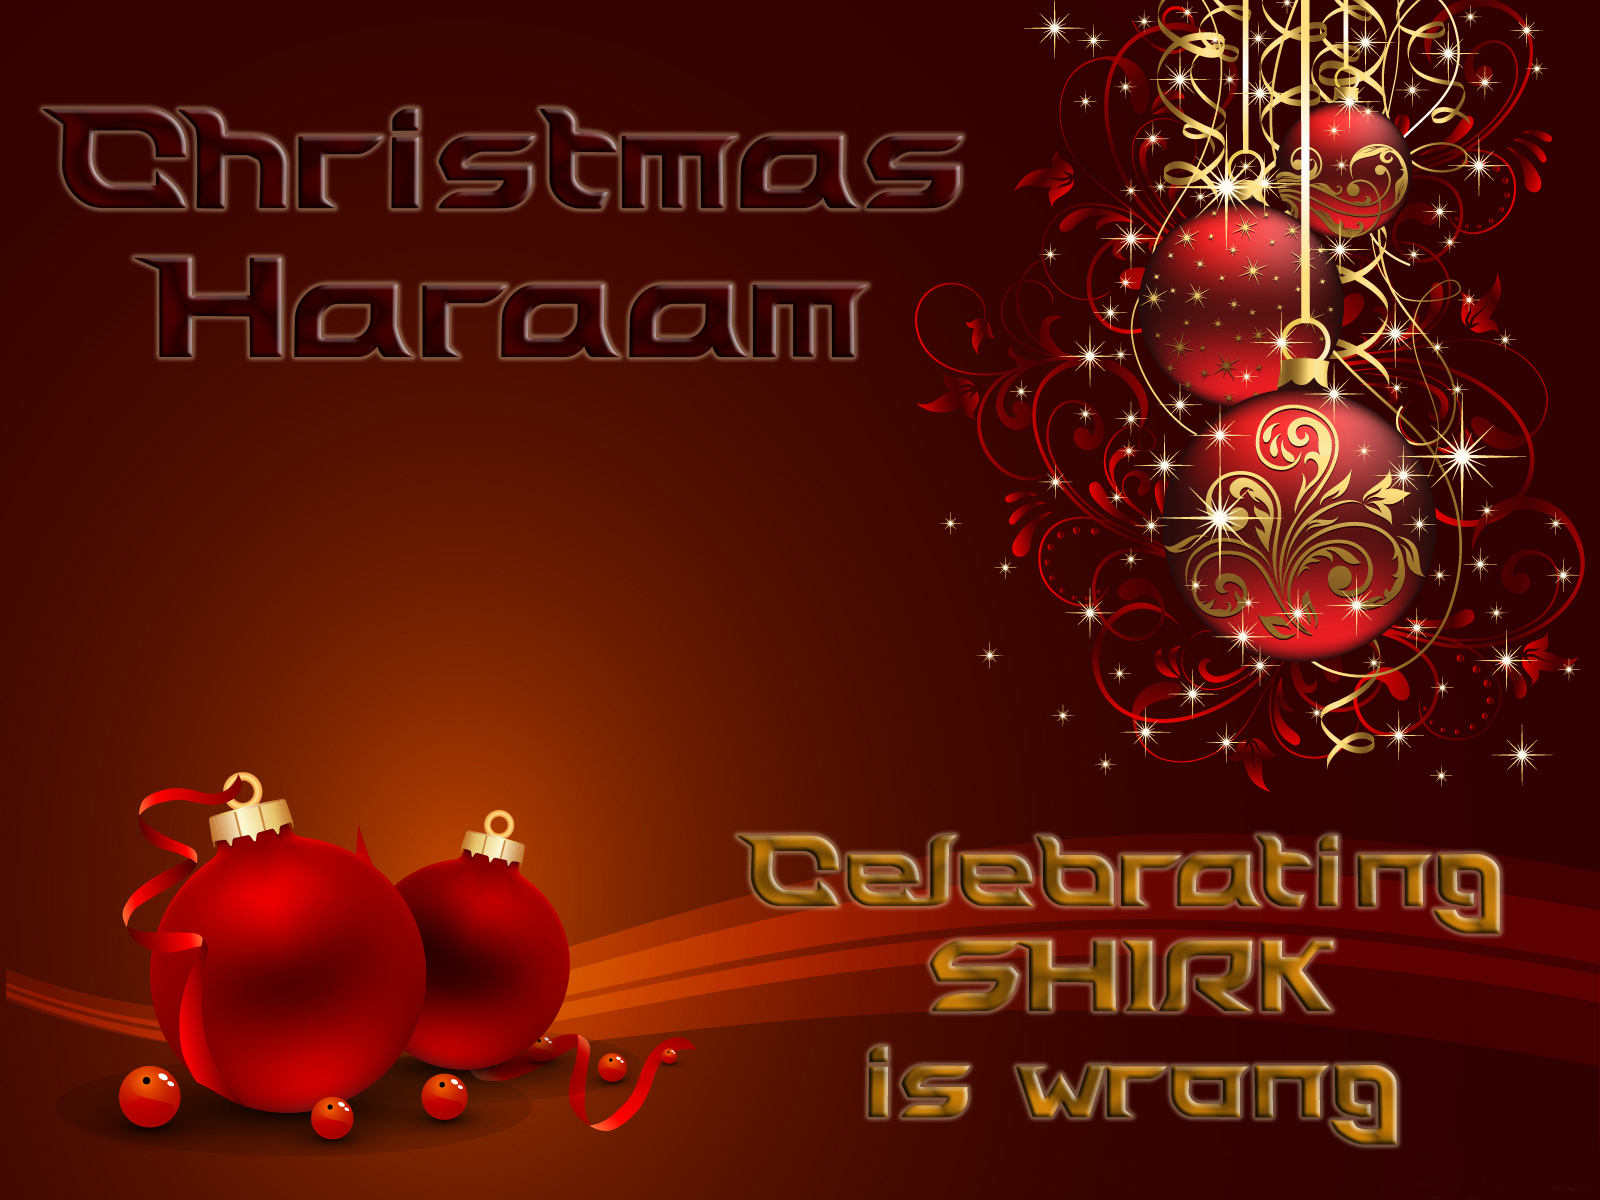 Islam Christmas.Christmas And Islam Muslims Stop Making Excuses Stand